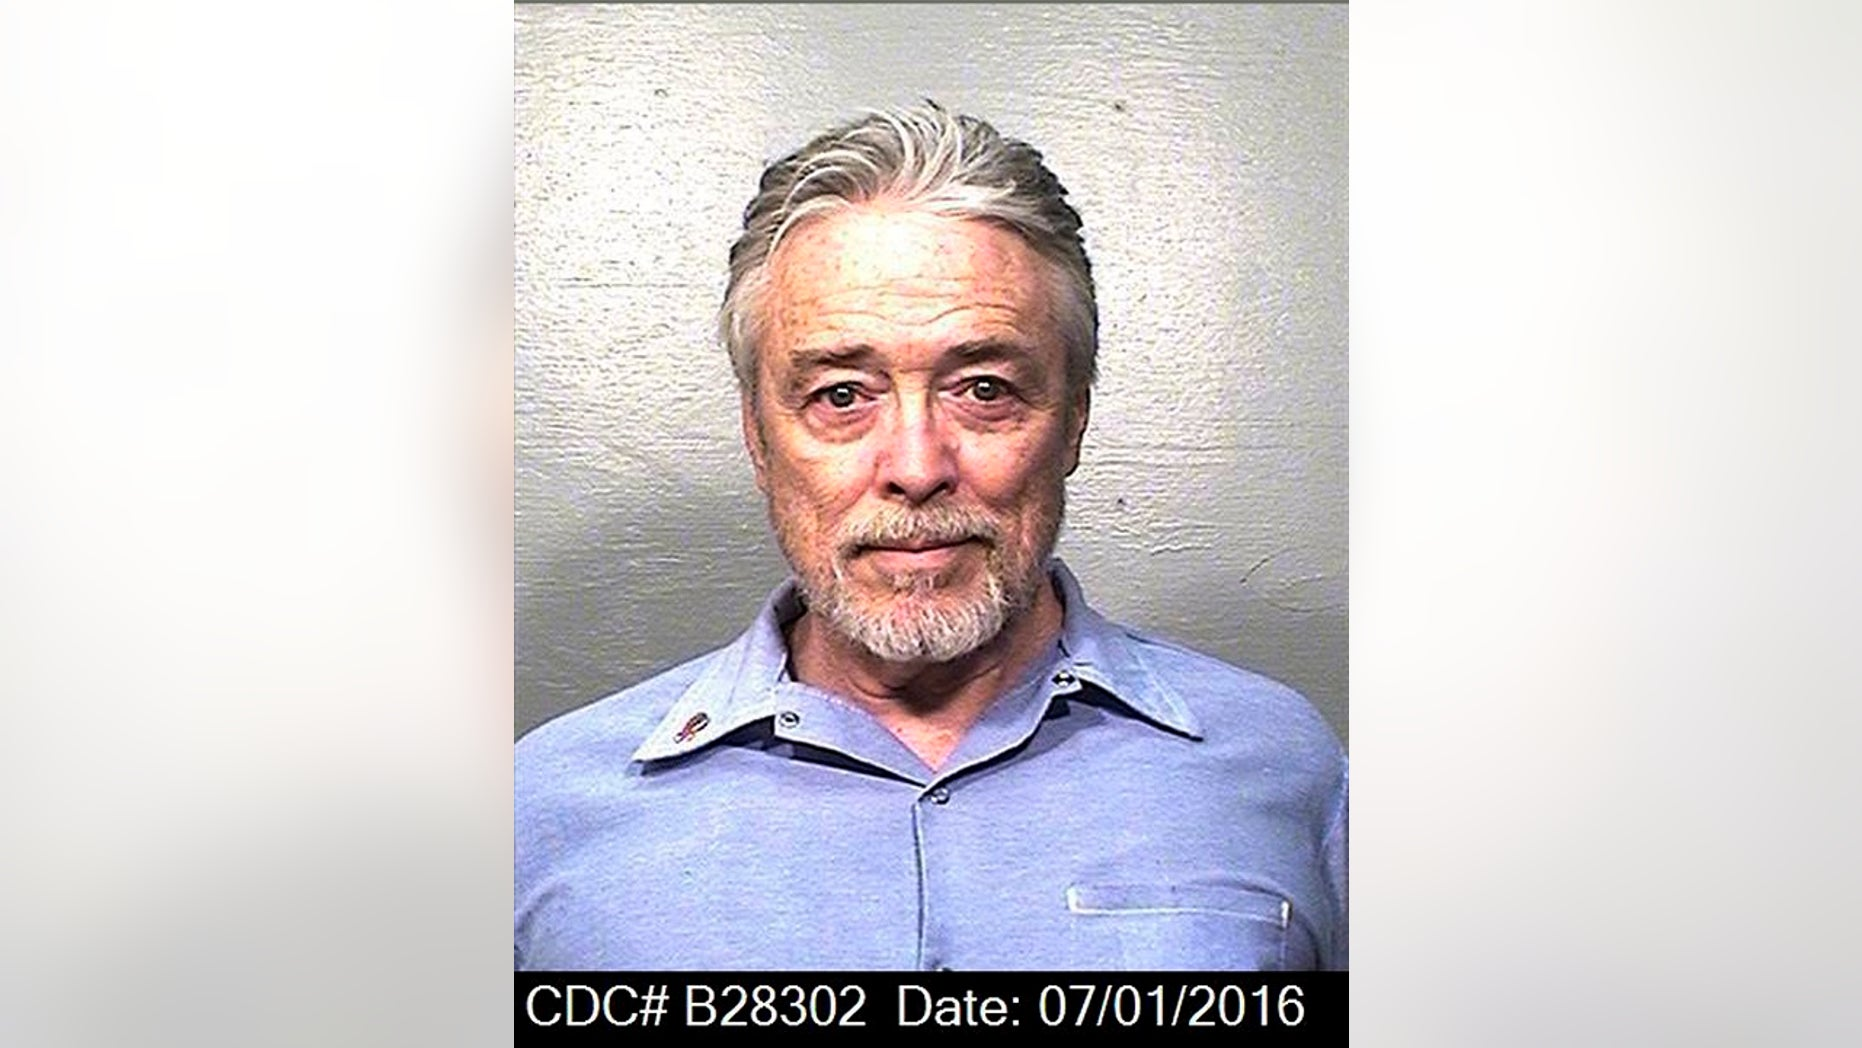 On Thursday, Jan. 3, 2019, a California parole panel has for the first time recommended that Charles Manson follower RobertKenneth Beausoleil be freed after nearly a half-century in prison.